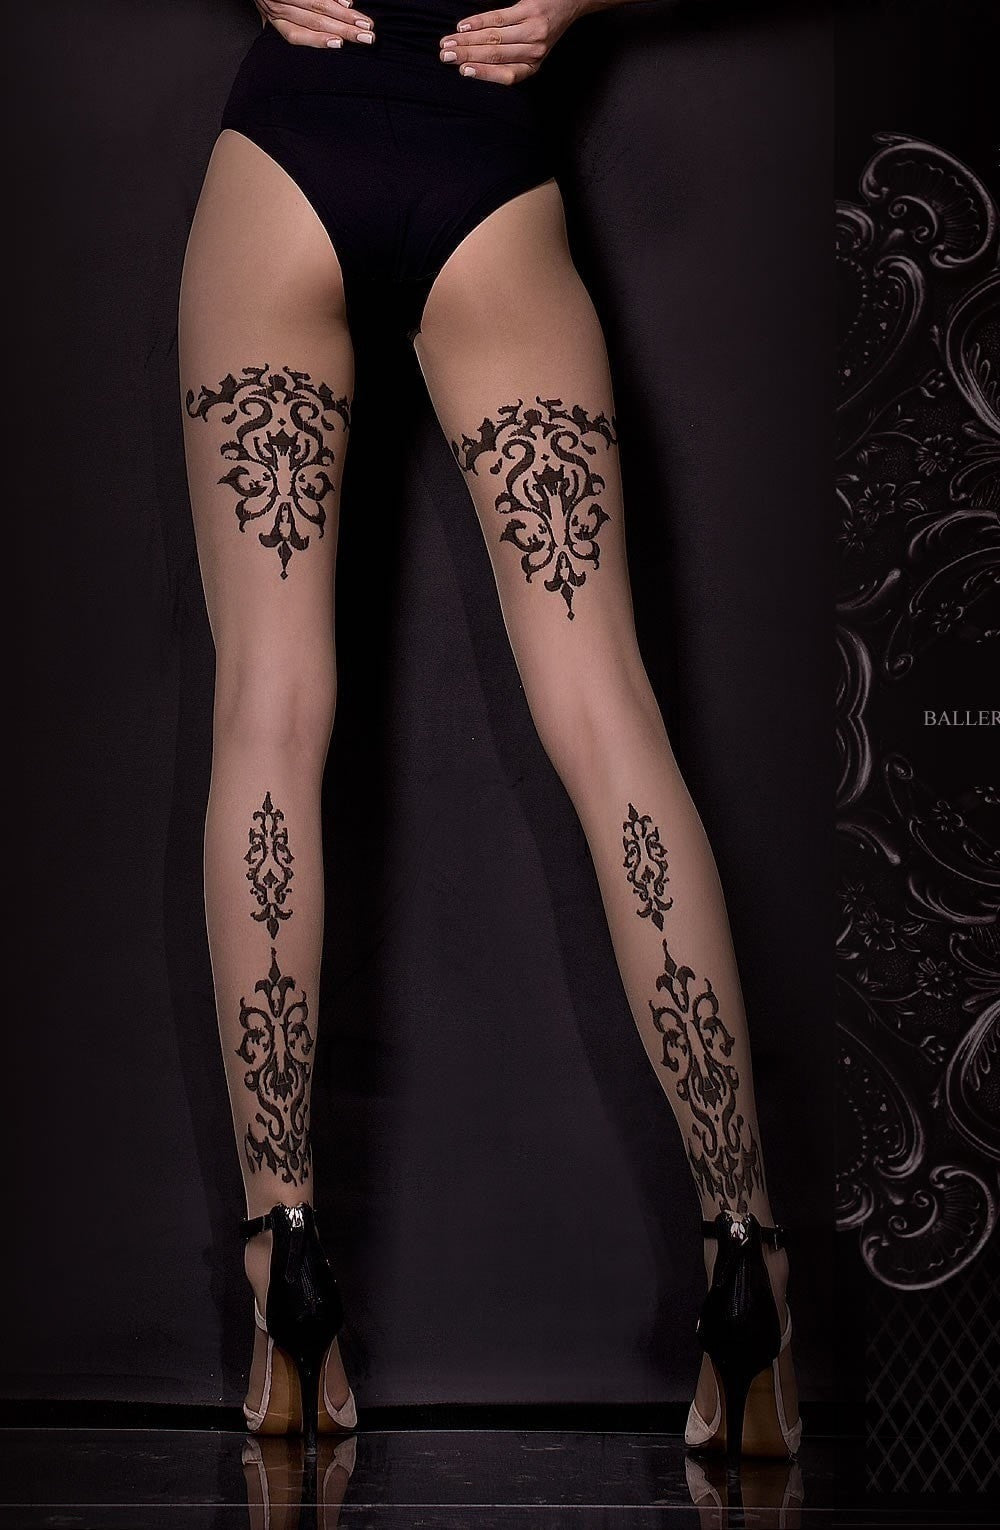 Ballerina Tights 310 (Black/Skin) - Tights - Ballerina - Charm and Lace Boutique